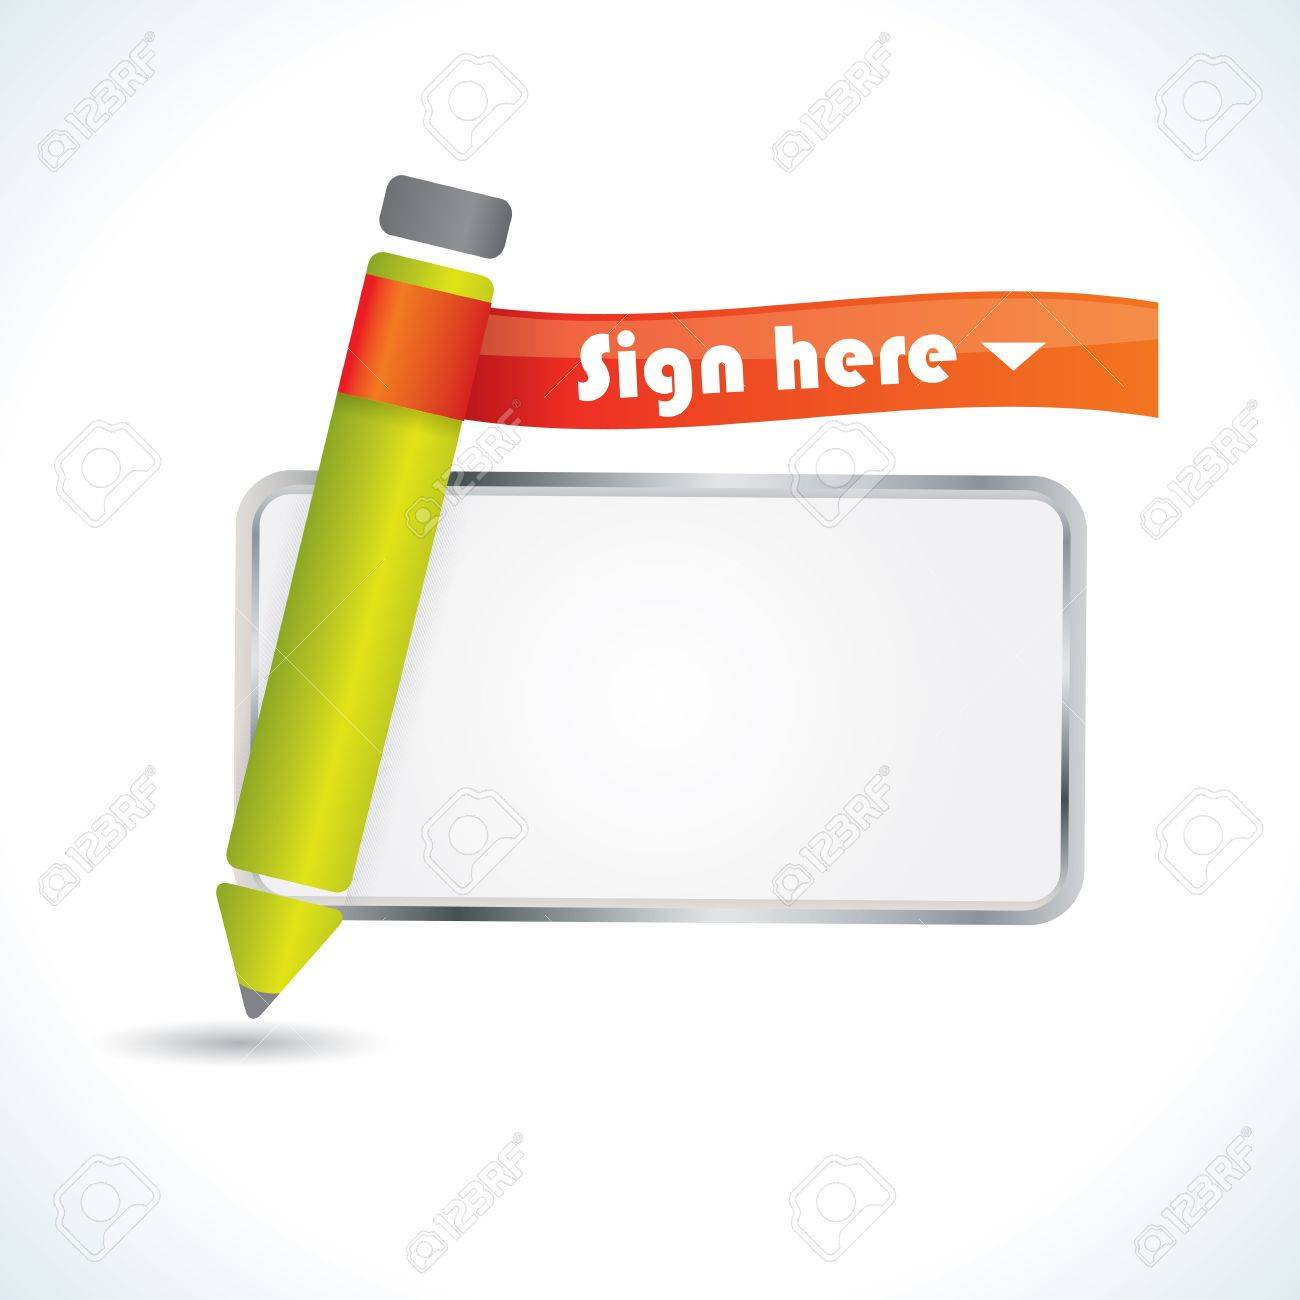 Sign Here Glossy Icon With Pencil And Frame For Signature Royalty ...